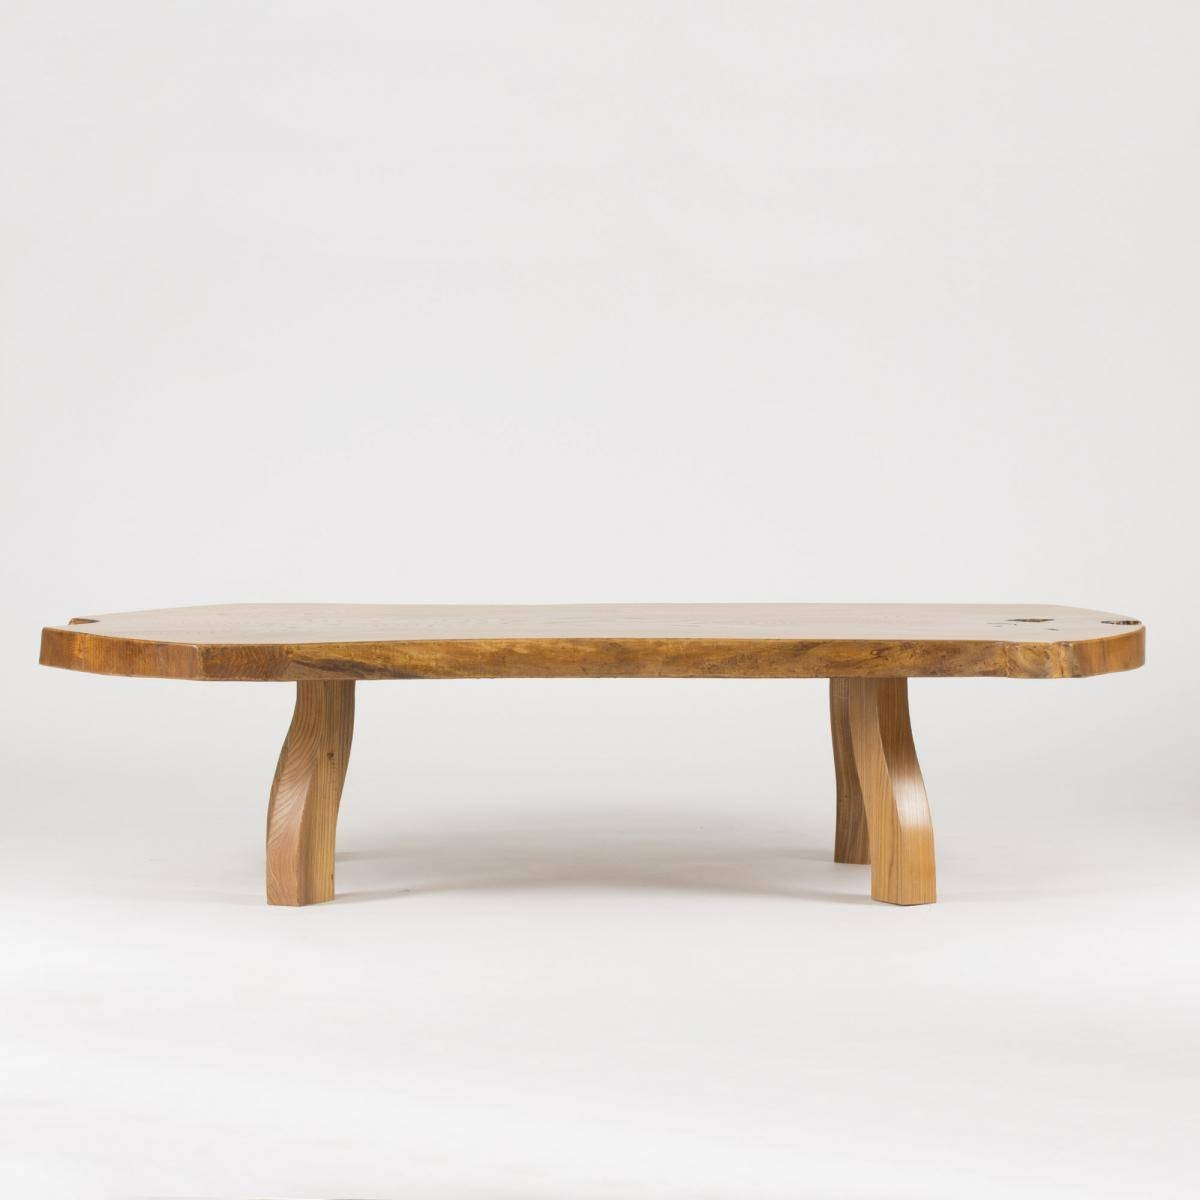 Pine Slab Coffee Tablec.a. Beijbom, 1960S For Sale At Pamono inside Pine Coffee Tables (Image 17 of 30)